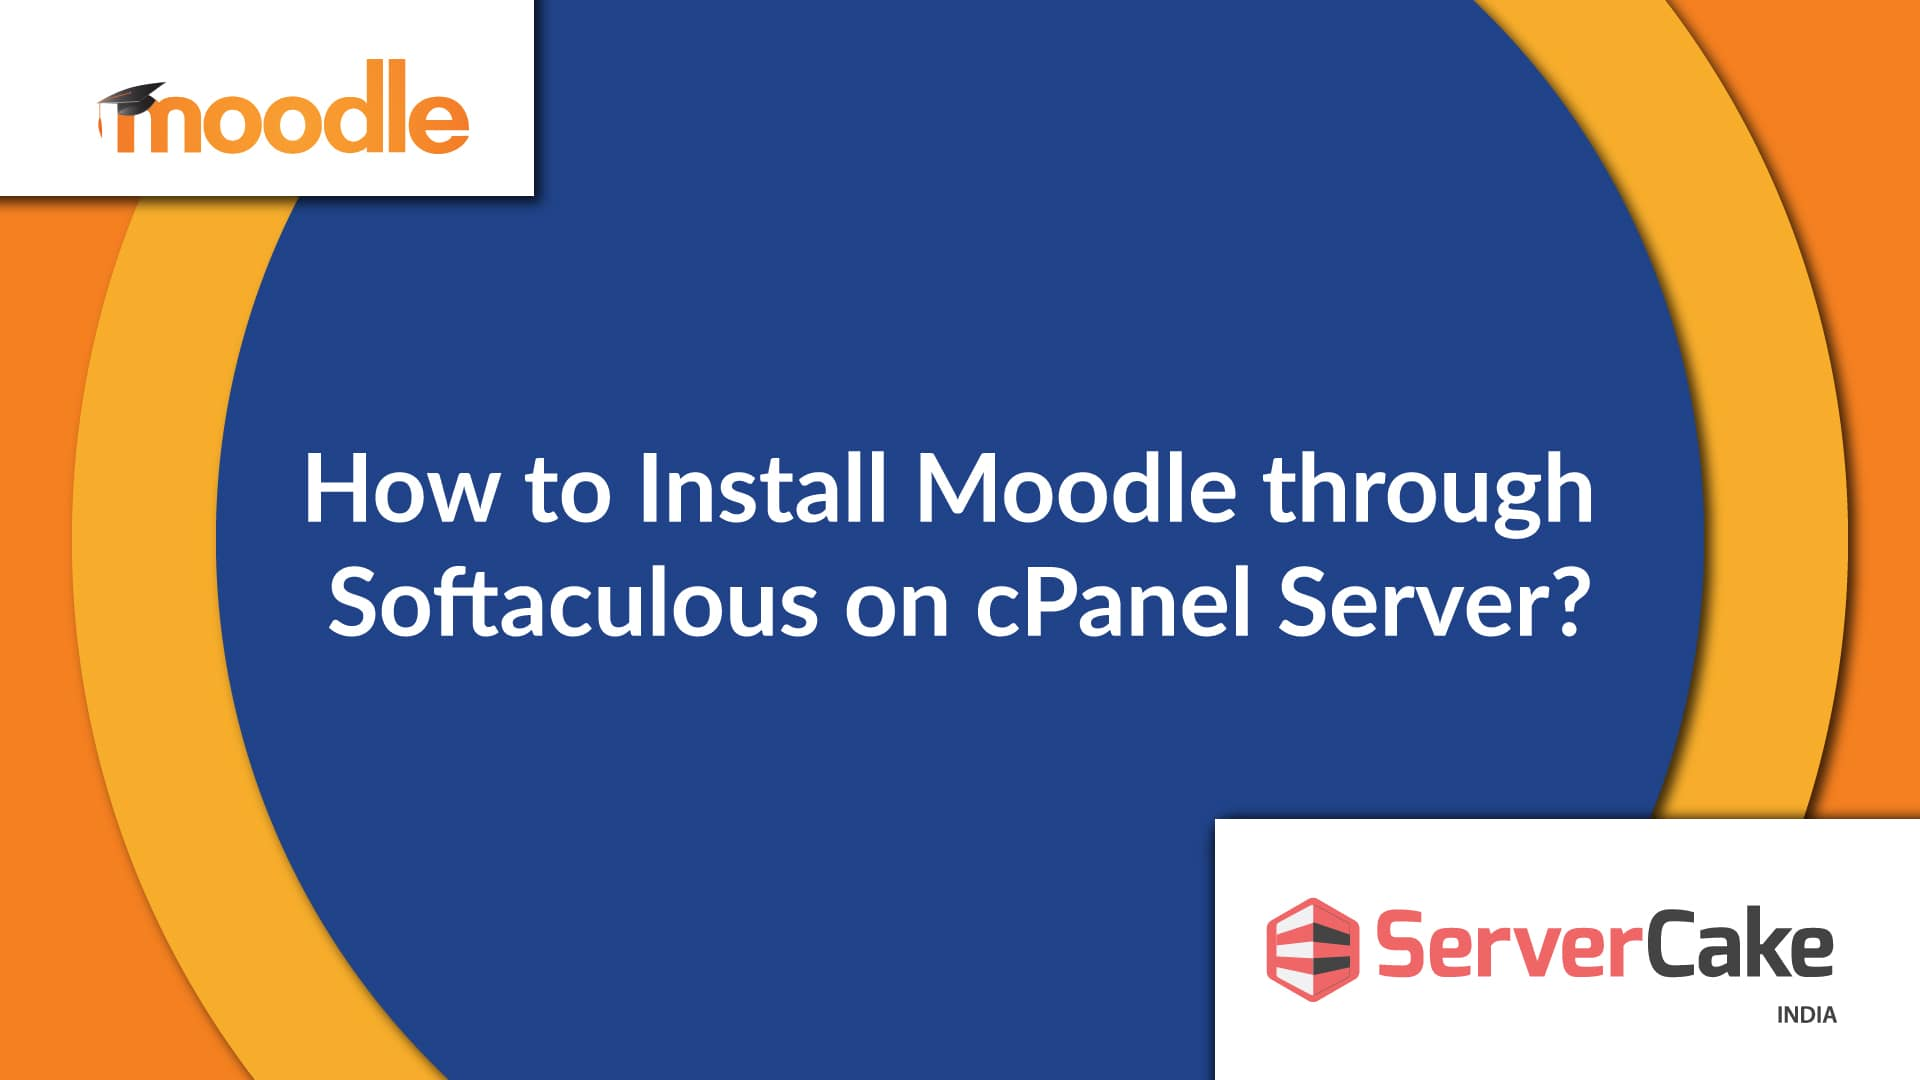 Install Moodle through Softaculous on cPanel